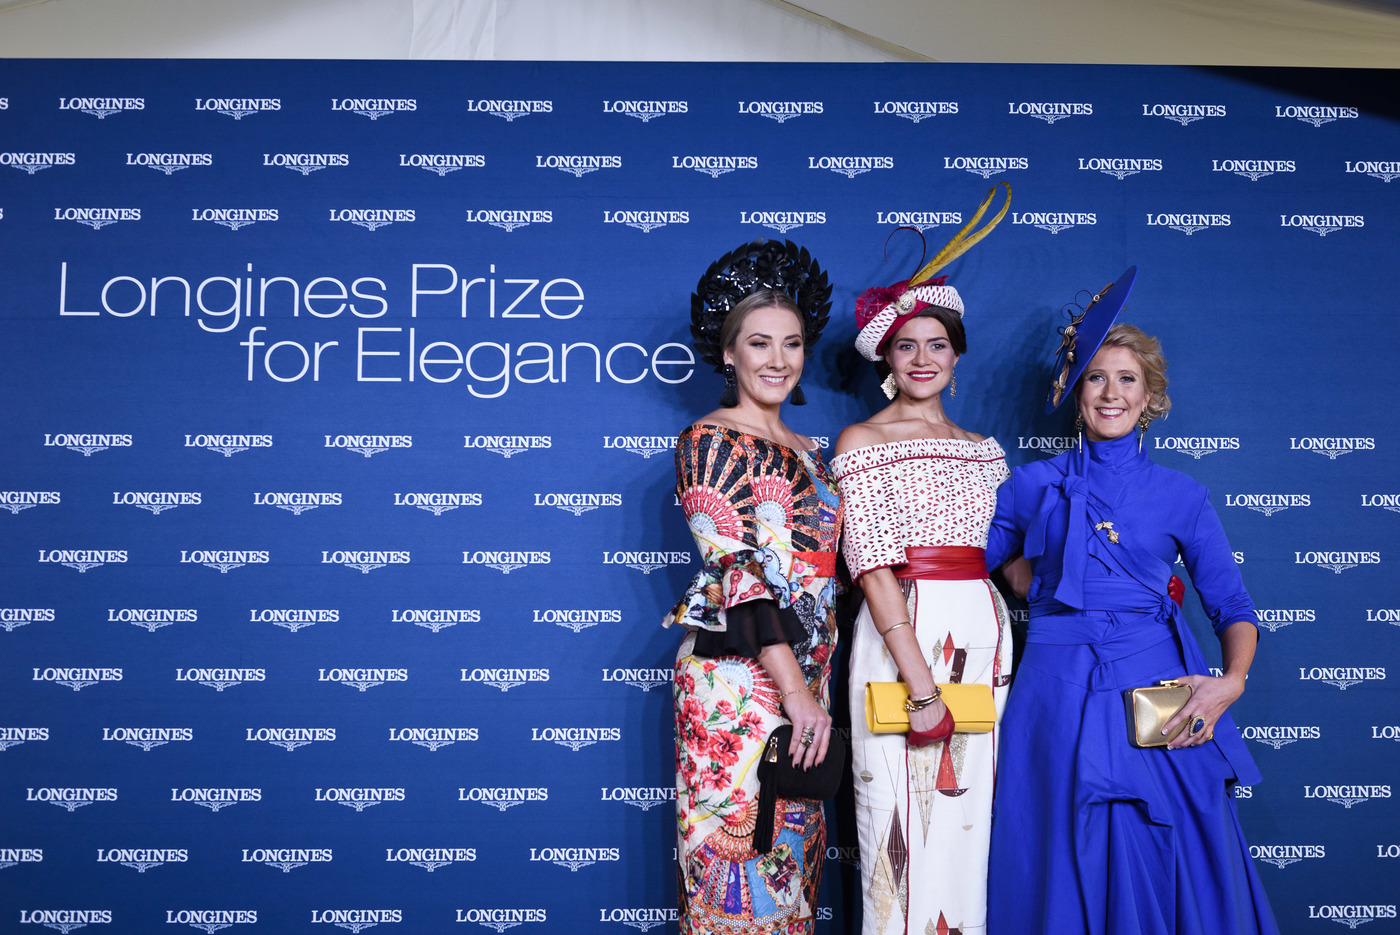 Longines Flat Racing Event: The Longines Queen Elizabeth Stakes brings the Sydney Carnival to an elegant close 6